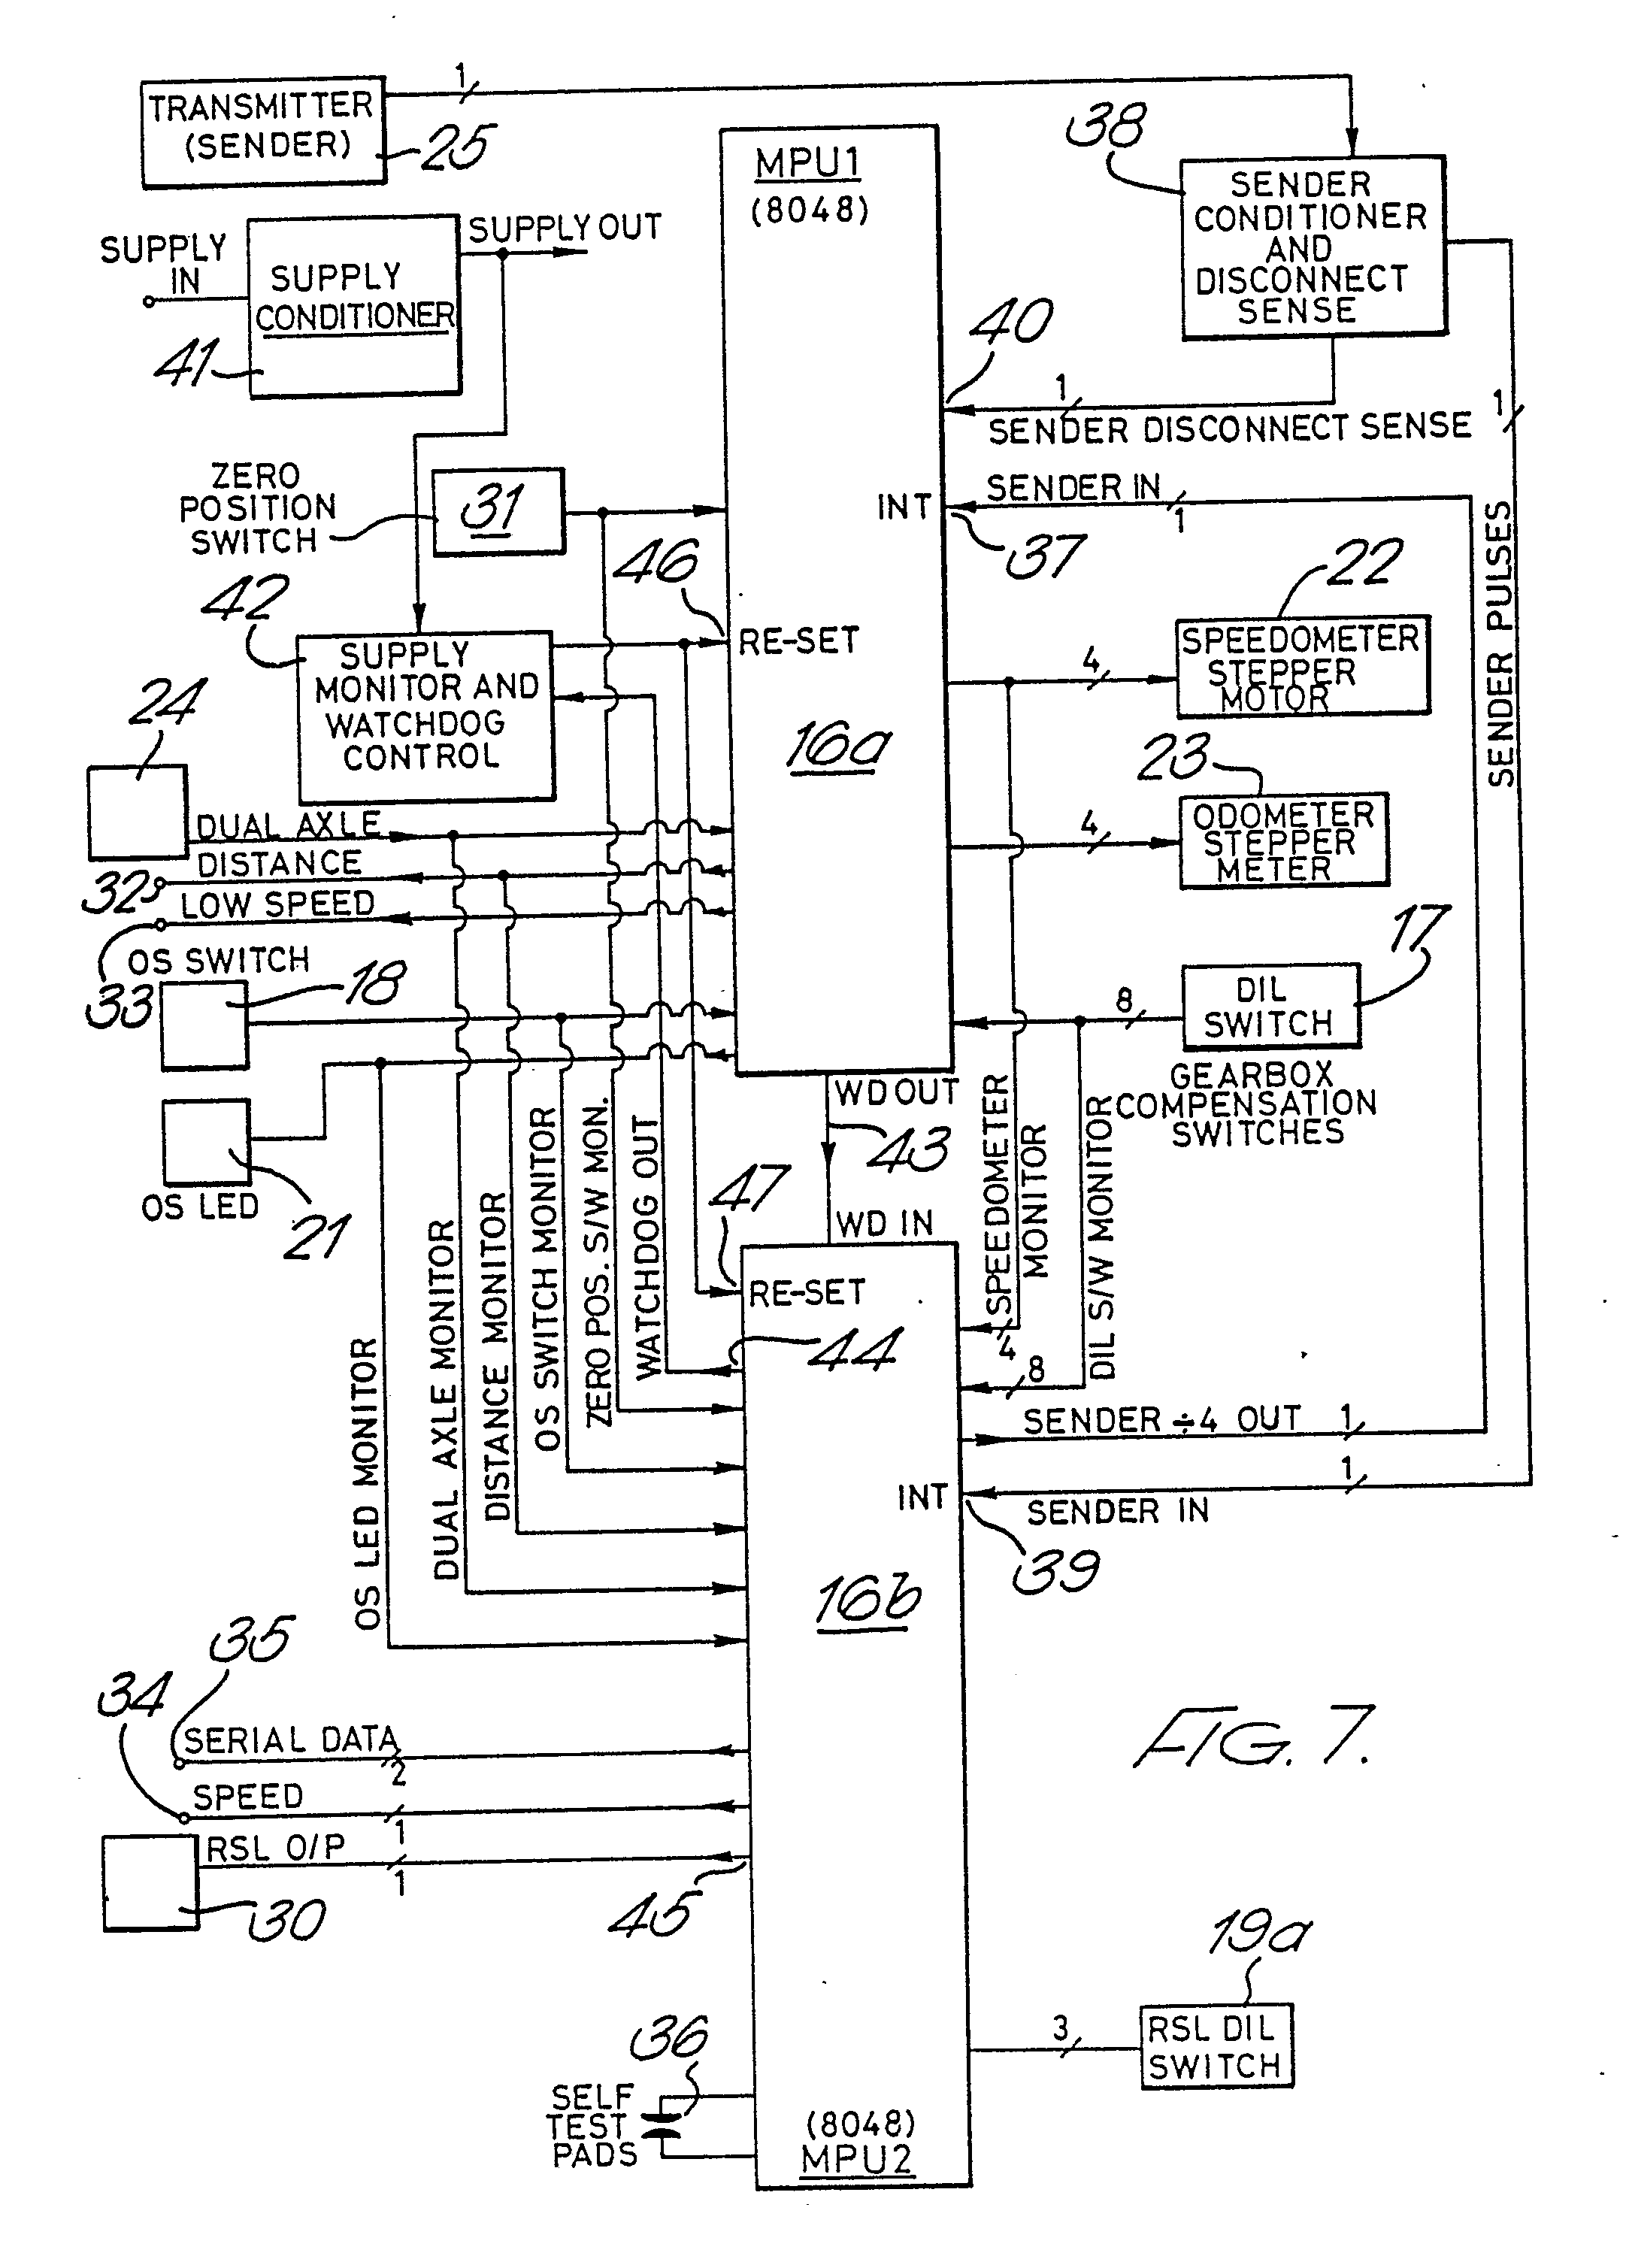 Electric Oil Pressure Sending Unit Vdo Cockpit Fuel Gauge Wiring Diagram Tach Electrical Diagrams Cytrus Co 2163x3017